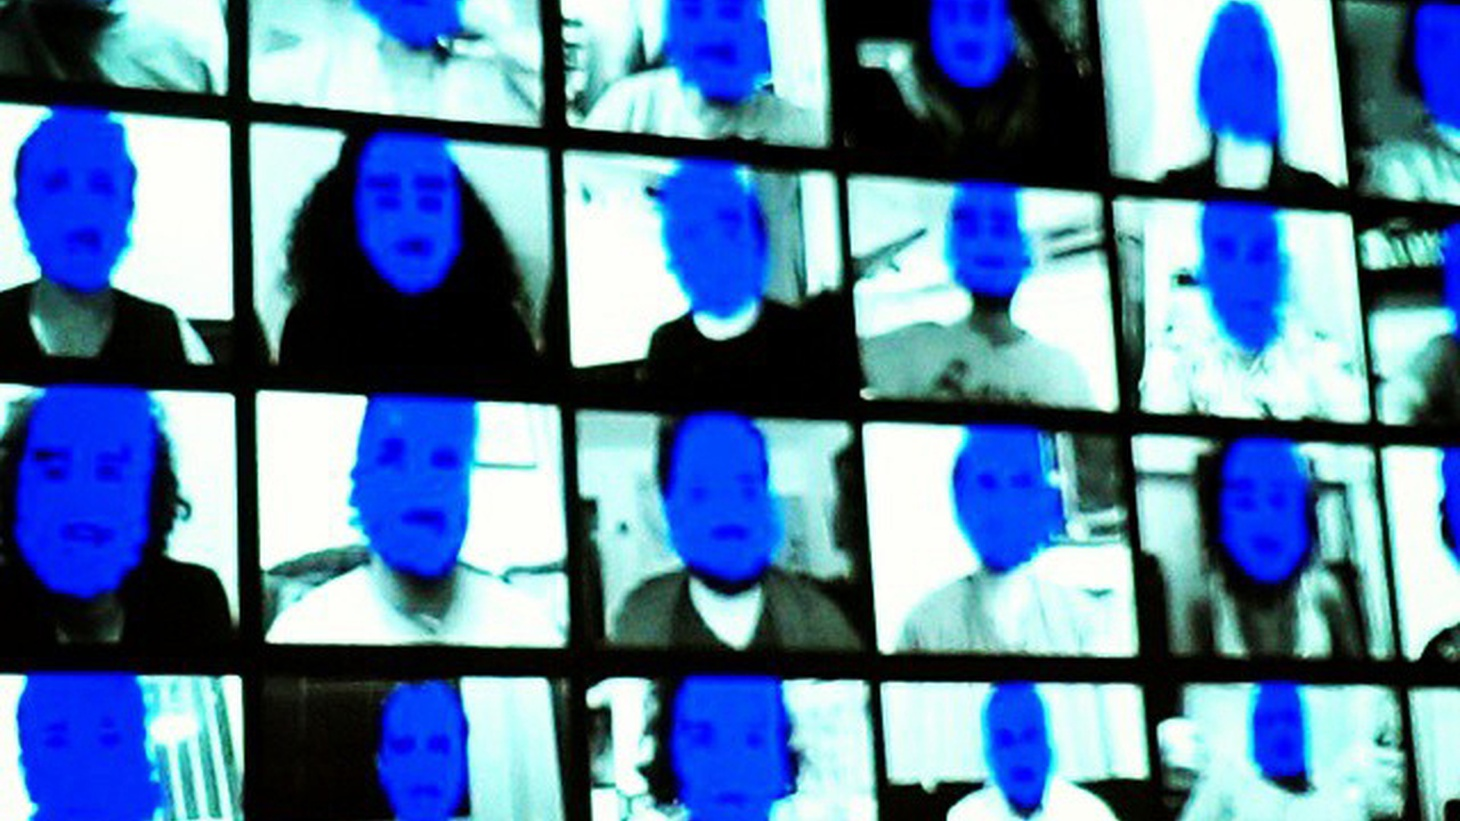 Privacy advocates are warning about the loss of public anonymity from face-recognition technology that's ubiquitous thanks to Facebook and other software companies. We hear about the risks as well as the benefits.